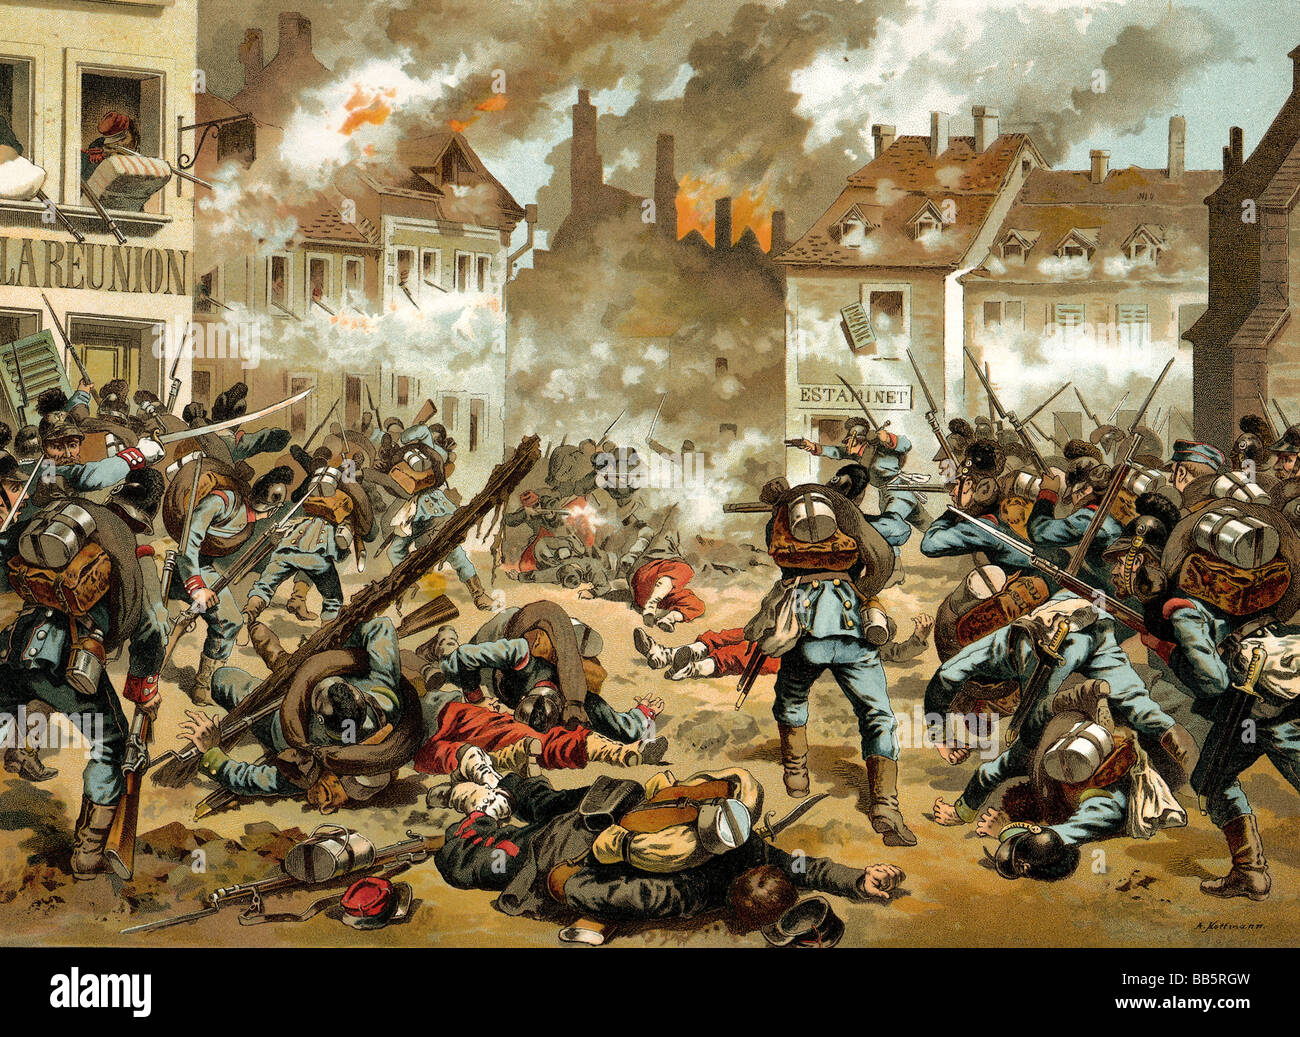 events, Franco-Prussian War 1870/1871, Battle of Sedan, 1.9.1870, Bavarian soldiers fighting in the streets, chromolithograph - Stock Image